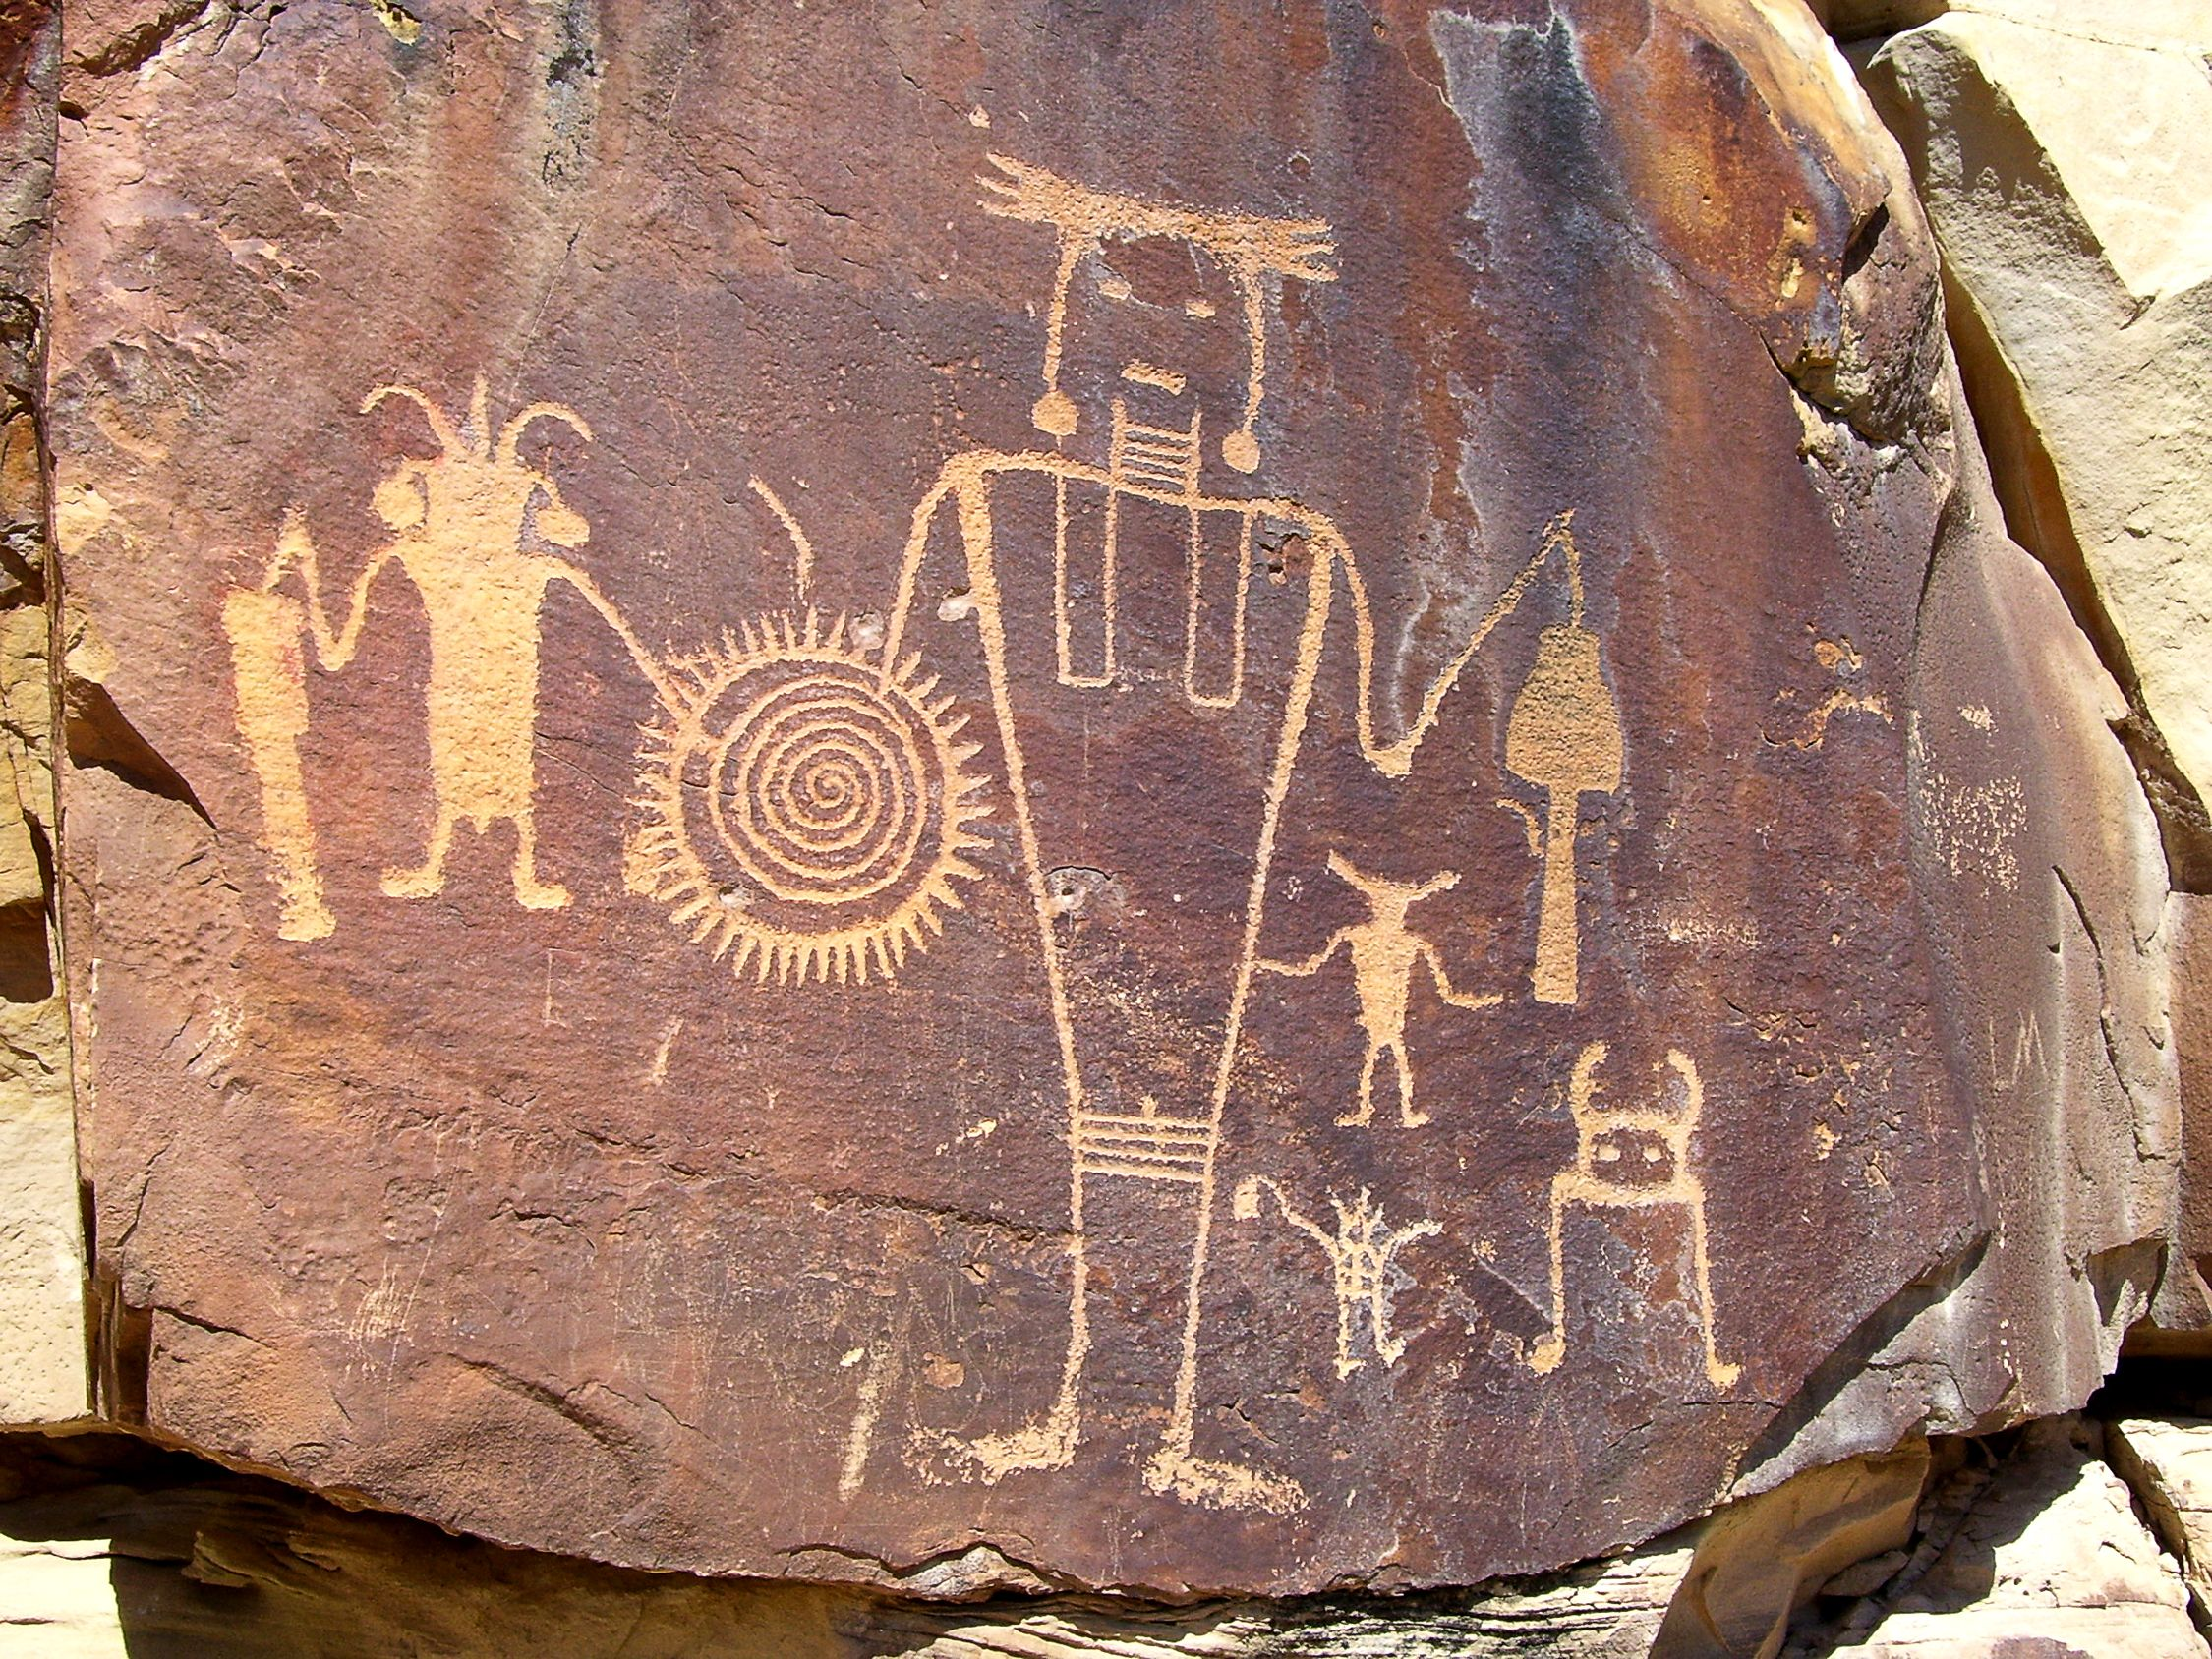 Petroglyphs, Pictographs, and a Geoglyph Rock Art of the